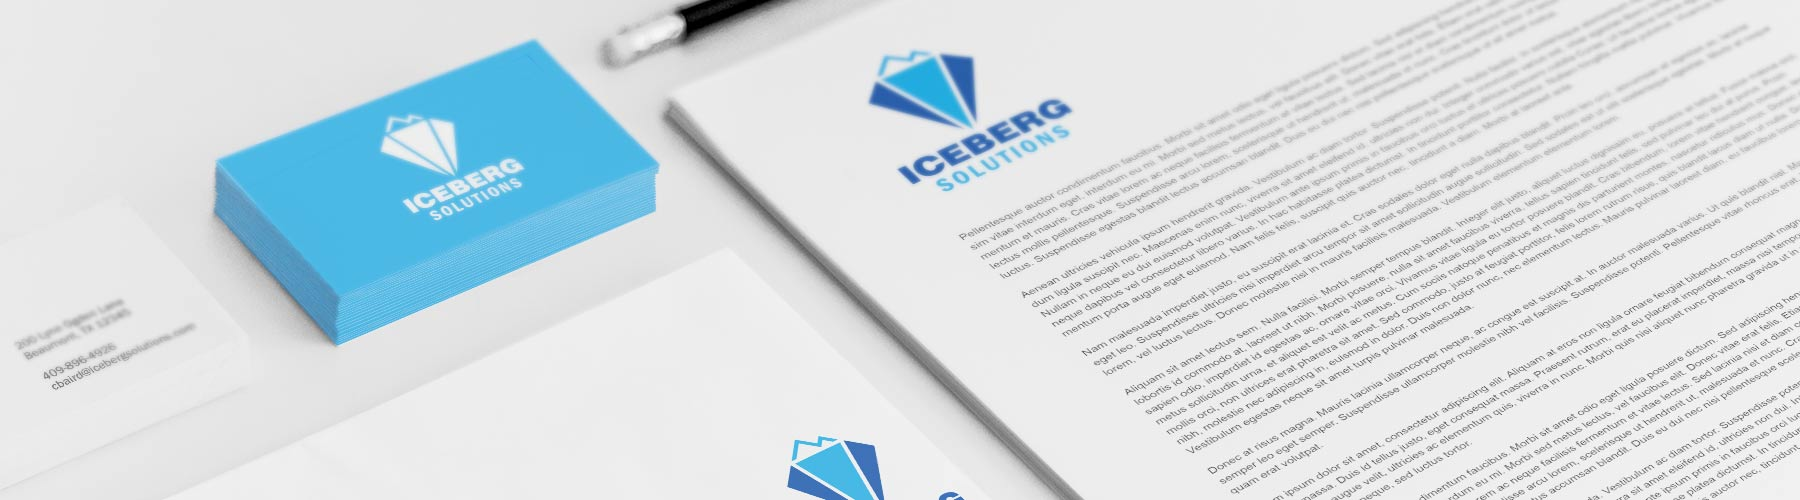 Branding example with business cards and letterhead